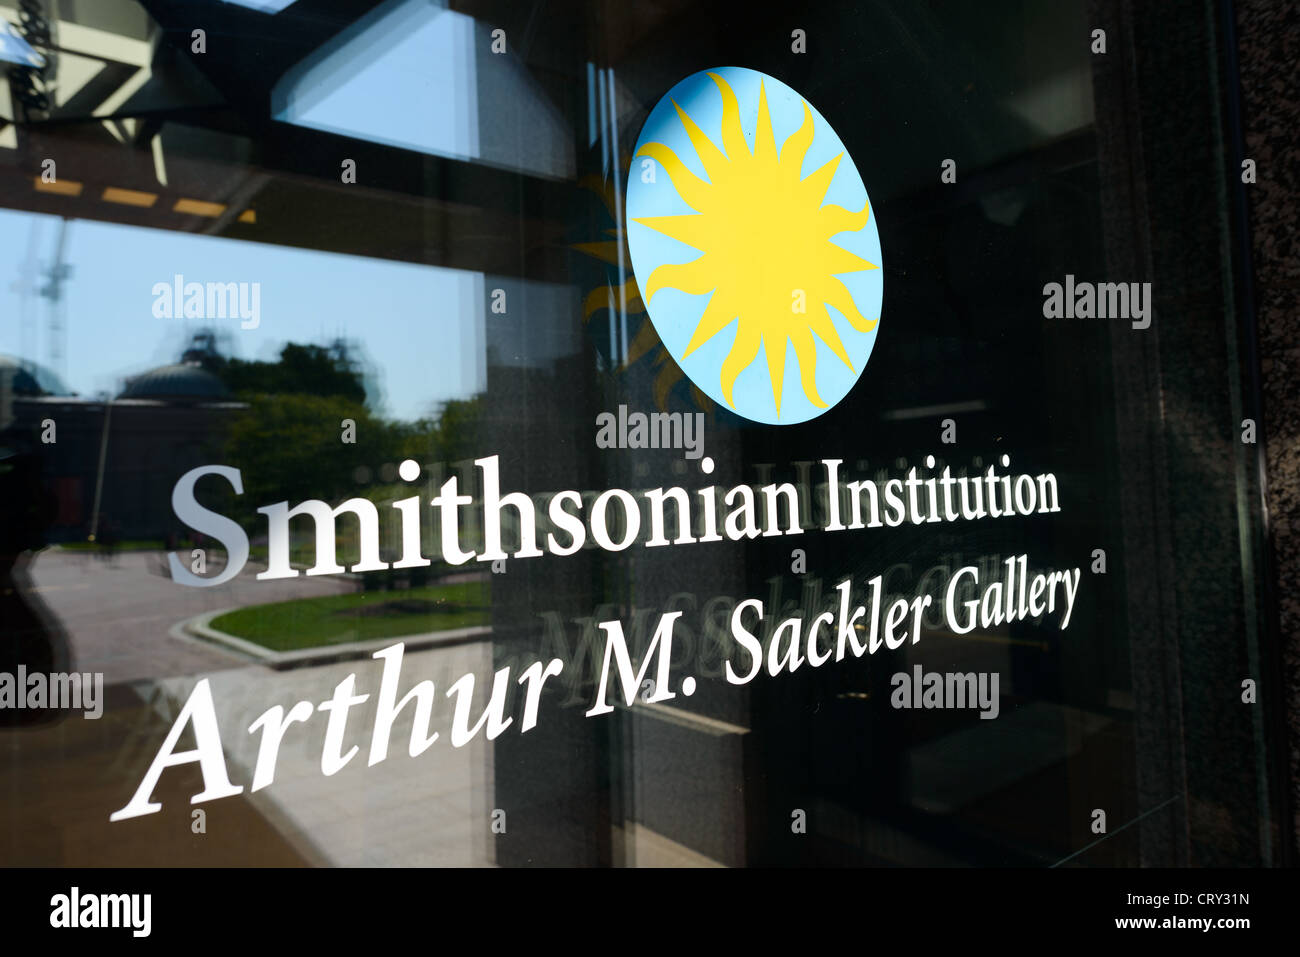 WASHINGTON DC, USA - Sackler Gallery Sign on Glass. The Arthur M. Sackler Gallery, located behind the Smithsonian - Stock Image